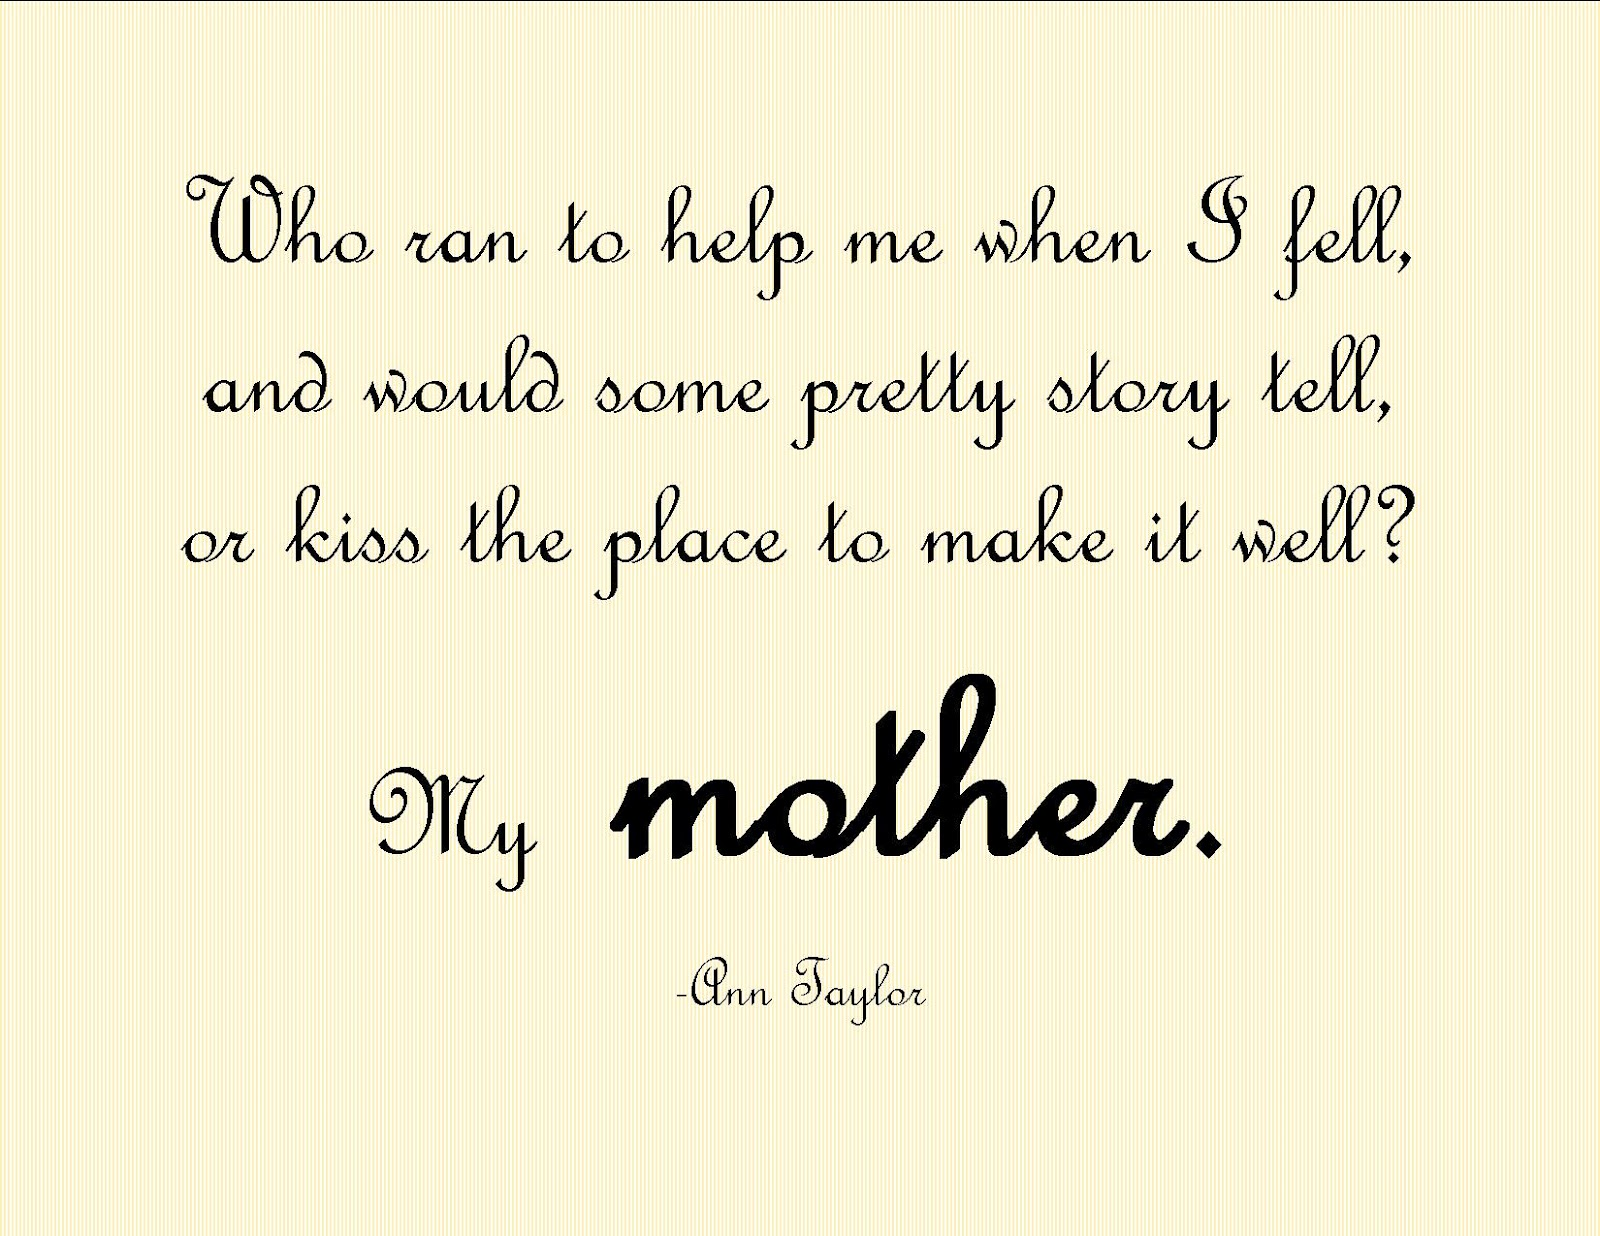 mother and daughter relationship tumblr quote